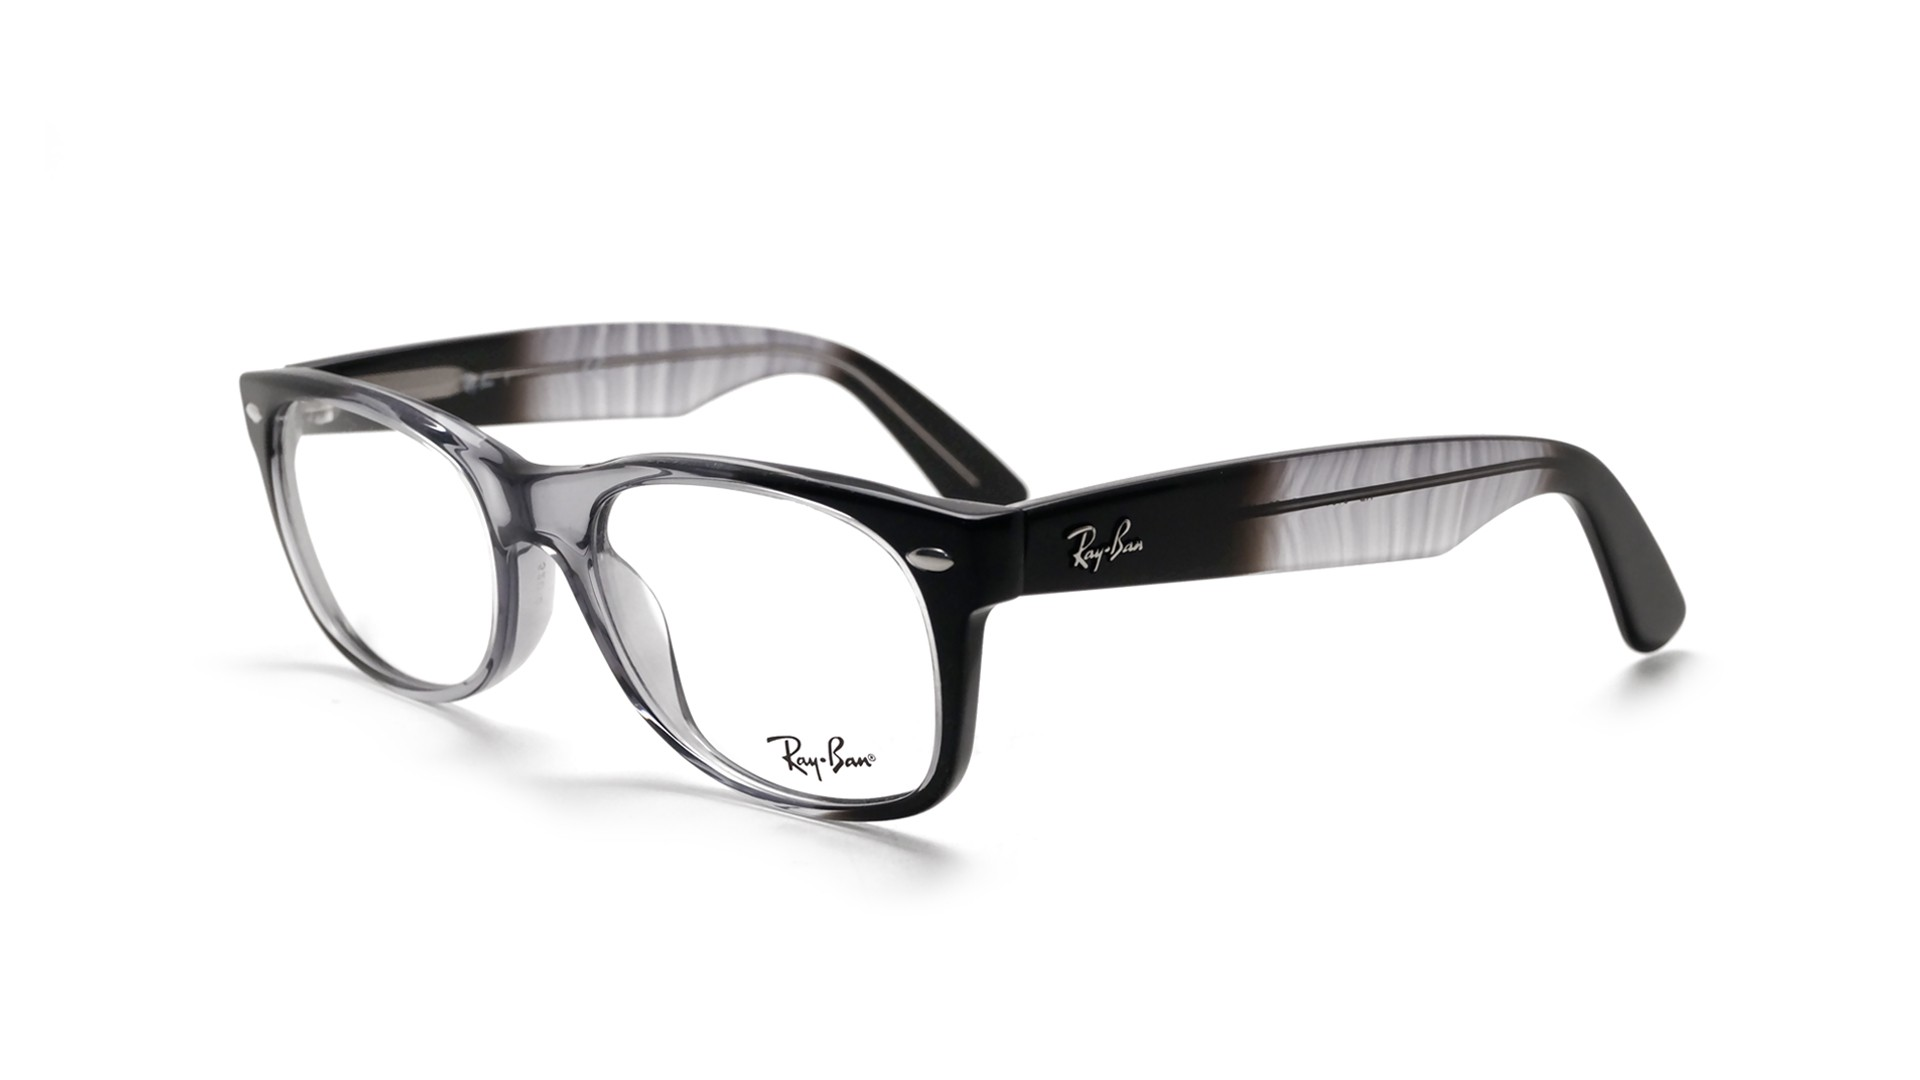 7df27811af New Ray Ban Eyeglasses Cheap « Heritage Malta